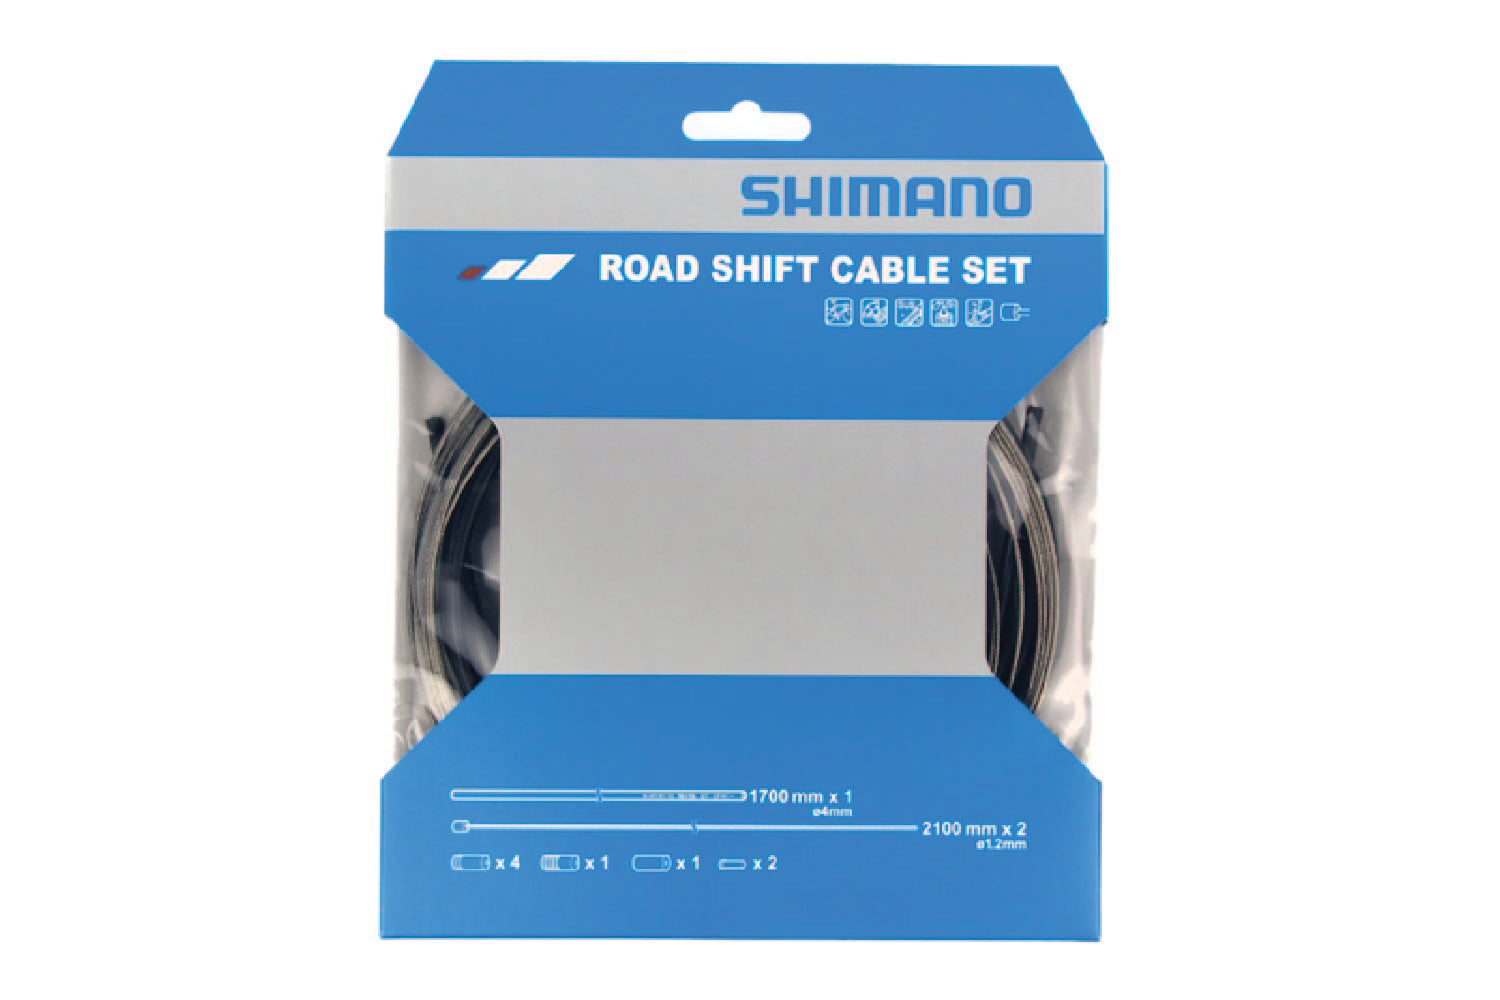 SHIMANO Road Shifting Cable Set (Stainless Steel)